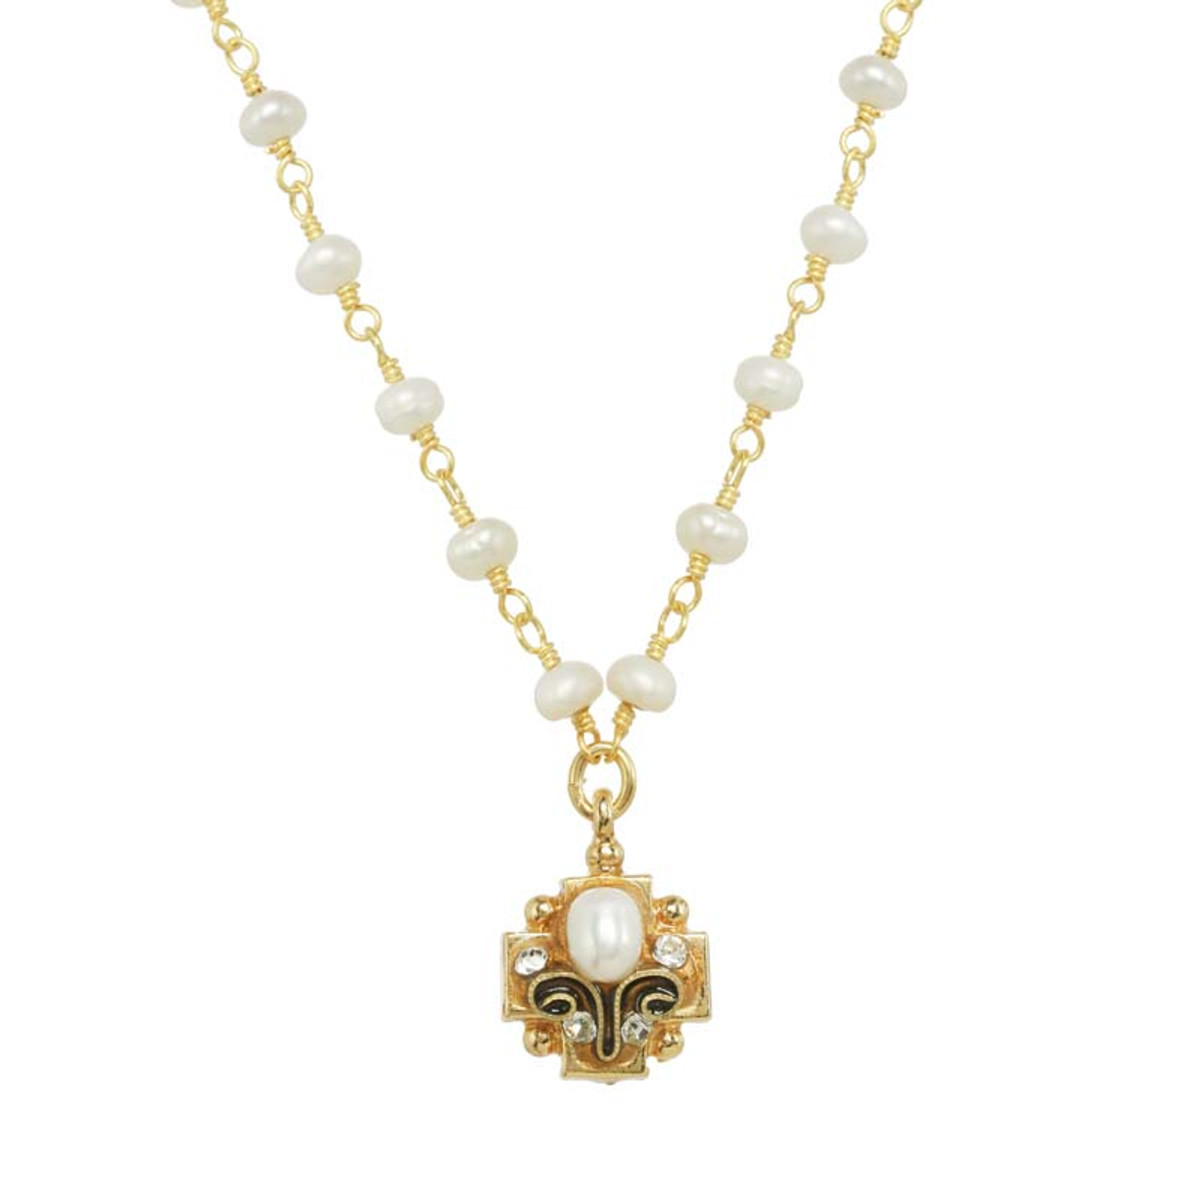 Michal Golan Jewellery Elegante Necklace